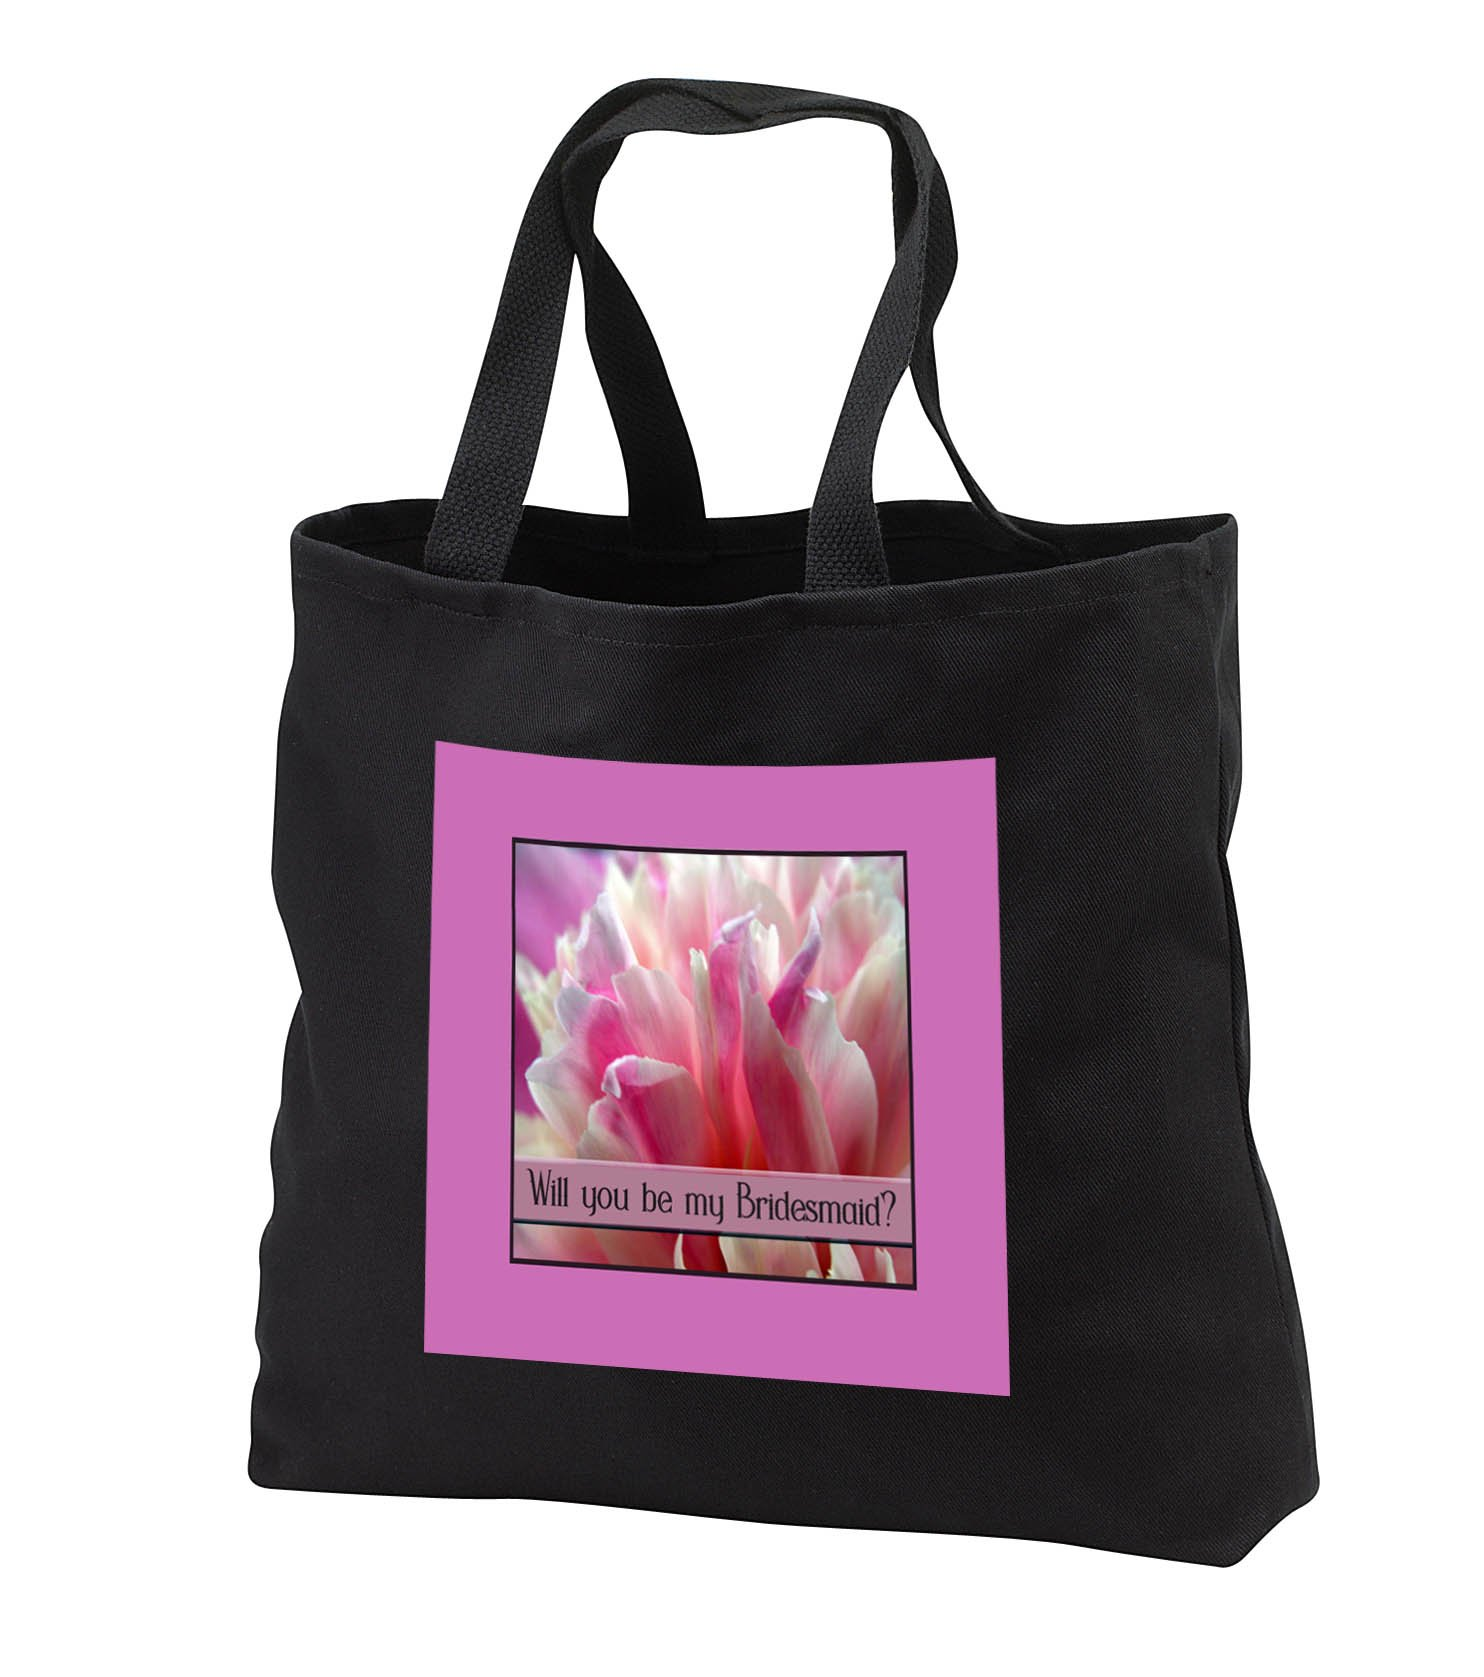 Beverly Turner Wedding Bridal Party Design - Will you be my Bridesmaid, Pink Peony Flower - Tote Bags - Black Tote Bag 14w x 14h x 3d (tb_282205_1)